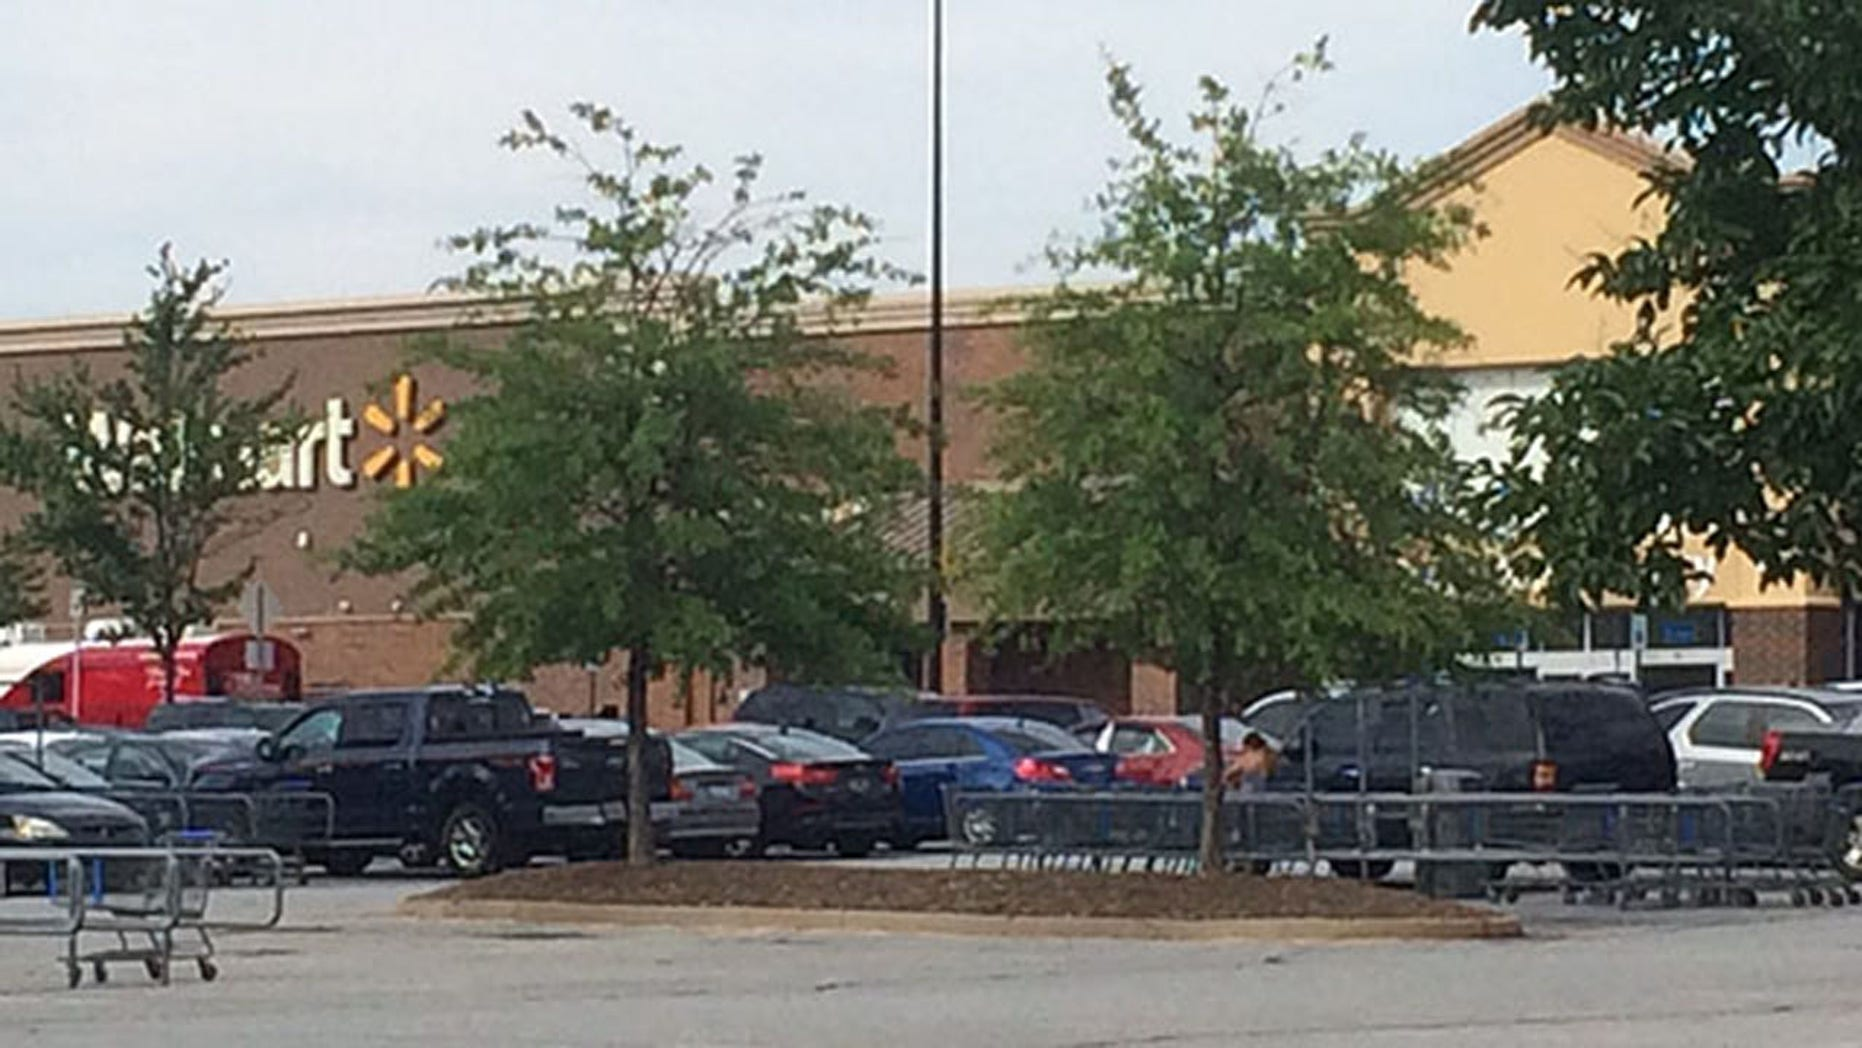 The Spartanburg Police Department said a child was left in a hot car outside a Walmart store.